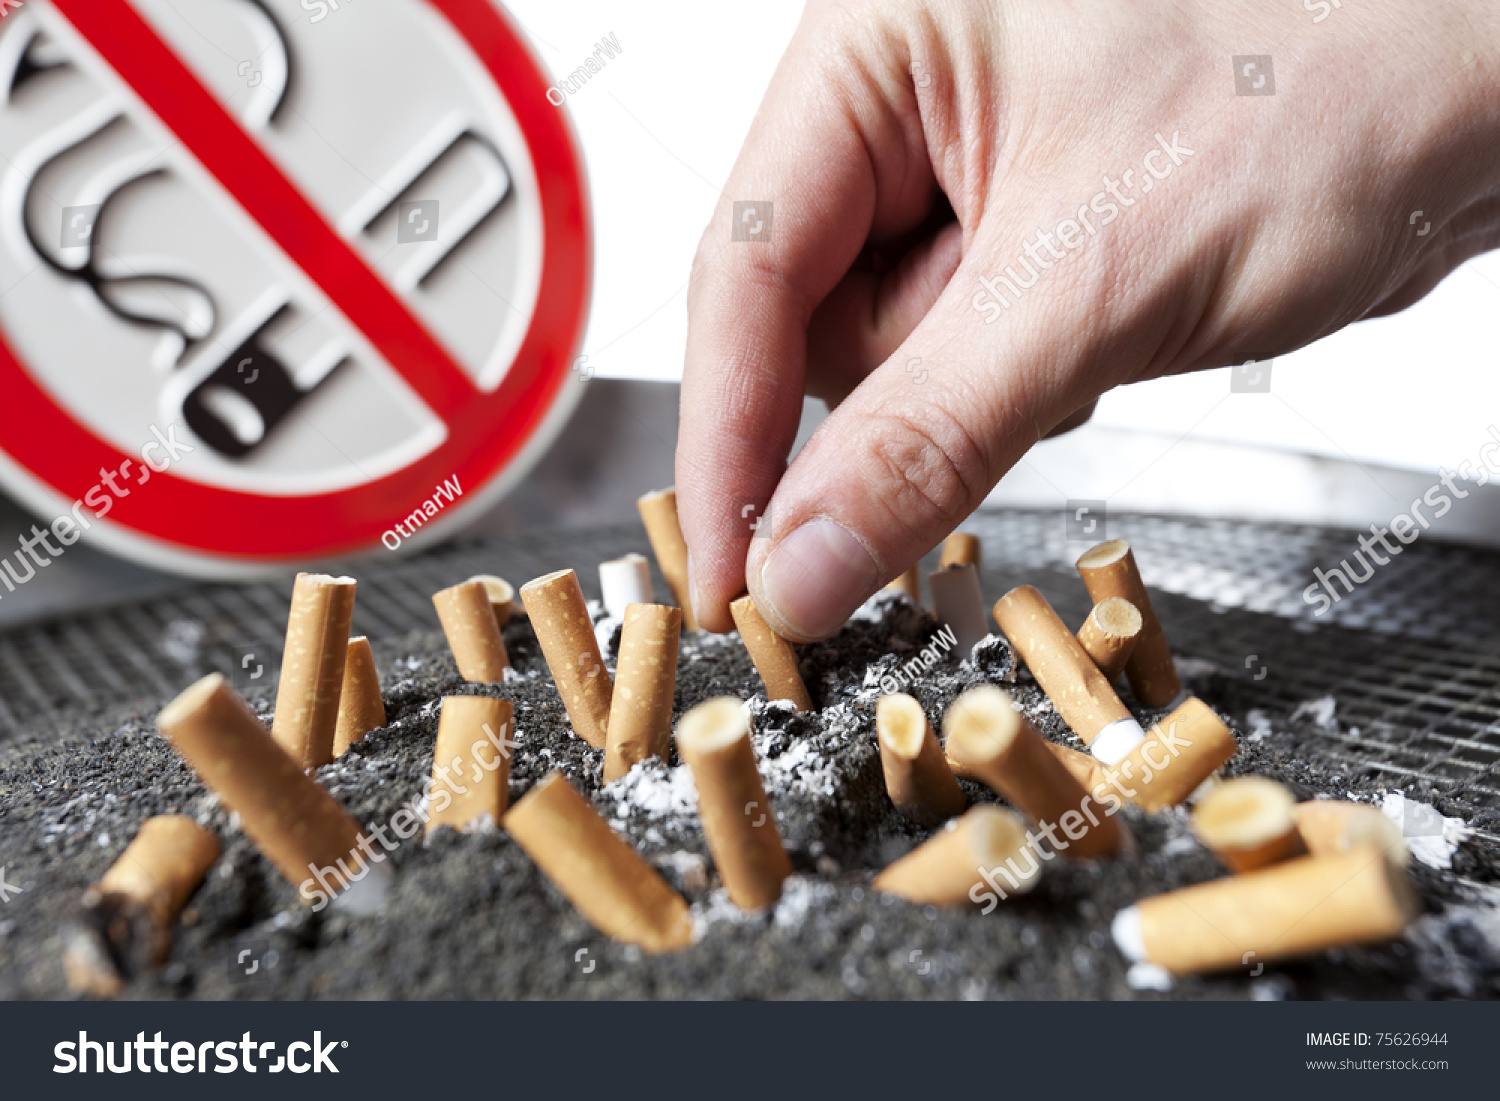 short essay on no smoking Smoking presentation 1 smokingabdulla husseinid number : h00229909 2 content• introduction• the causes• the consequences• health.